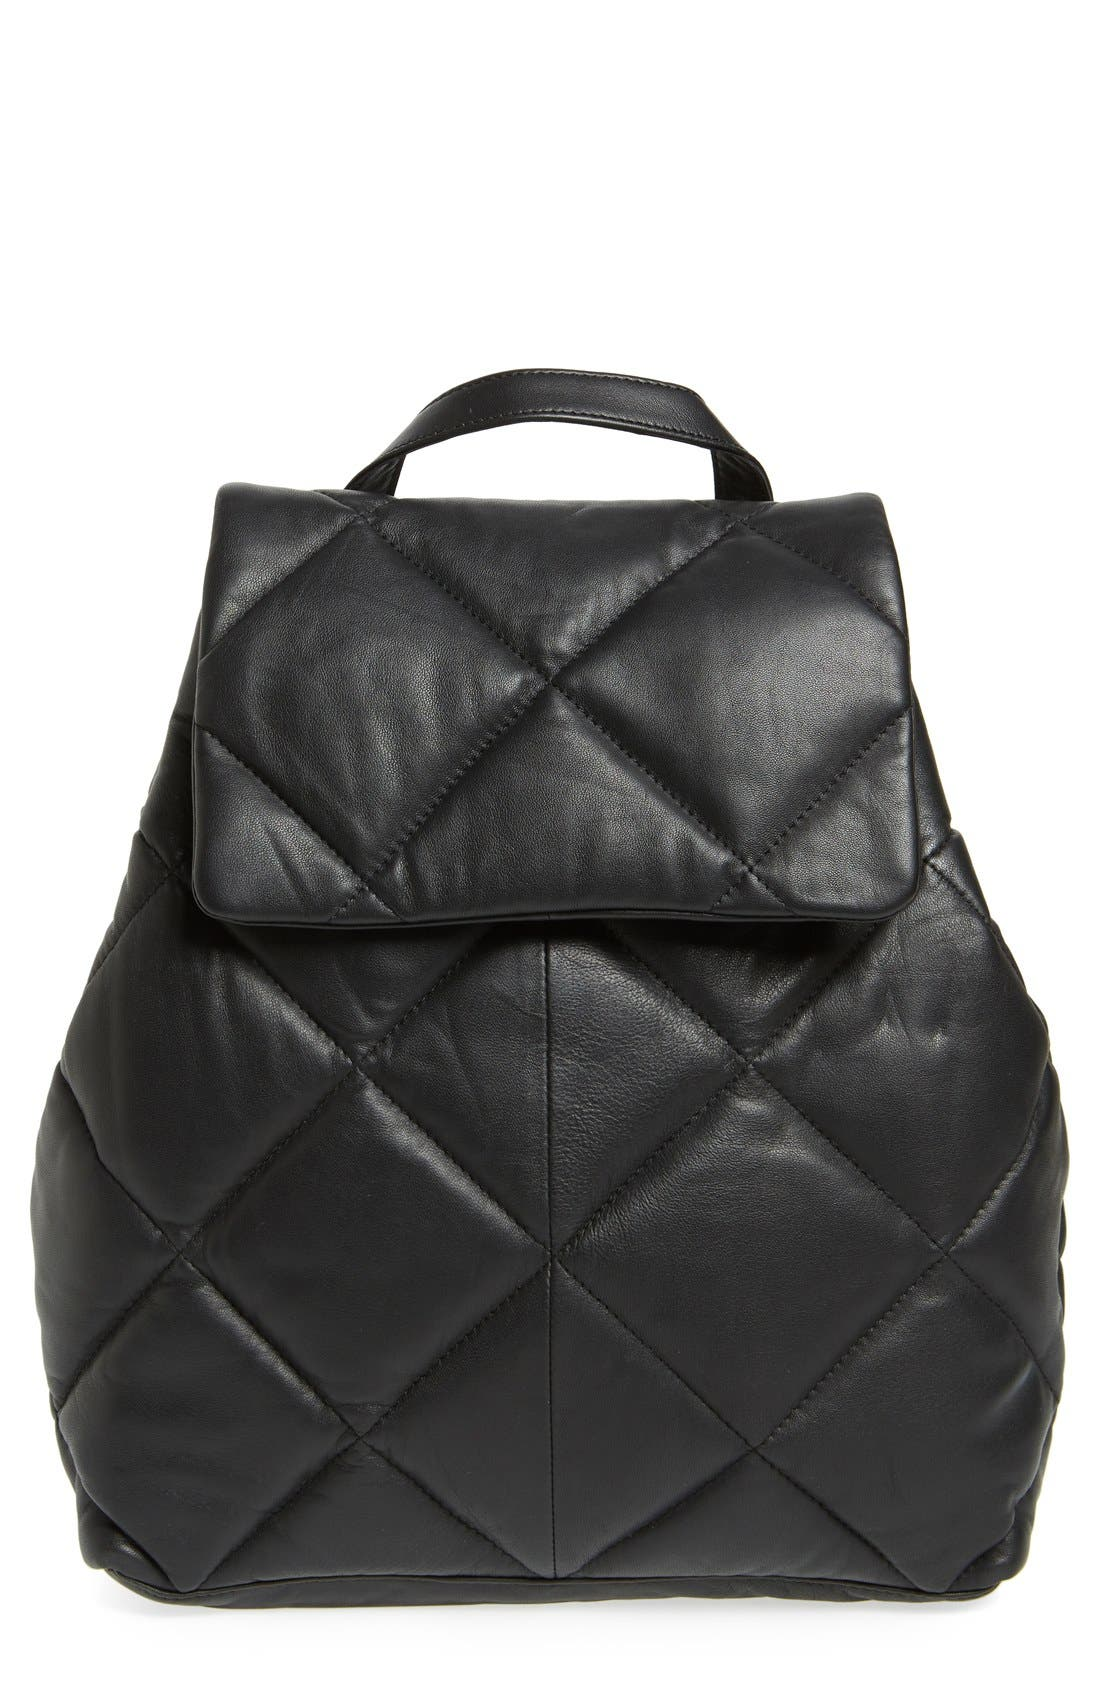 Alternate Image 1 Selected - Topshop Bryan Puffer Quilted Leather Backpack